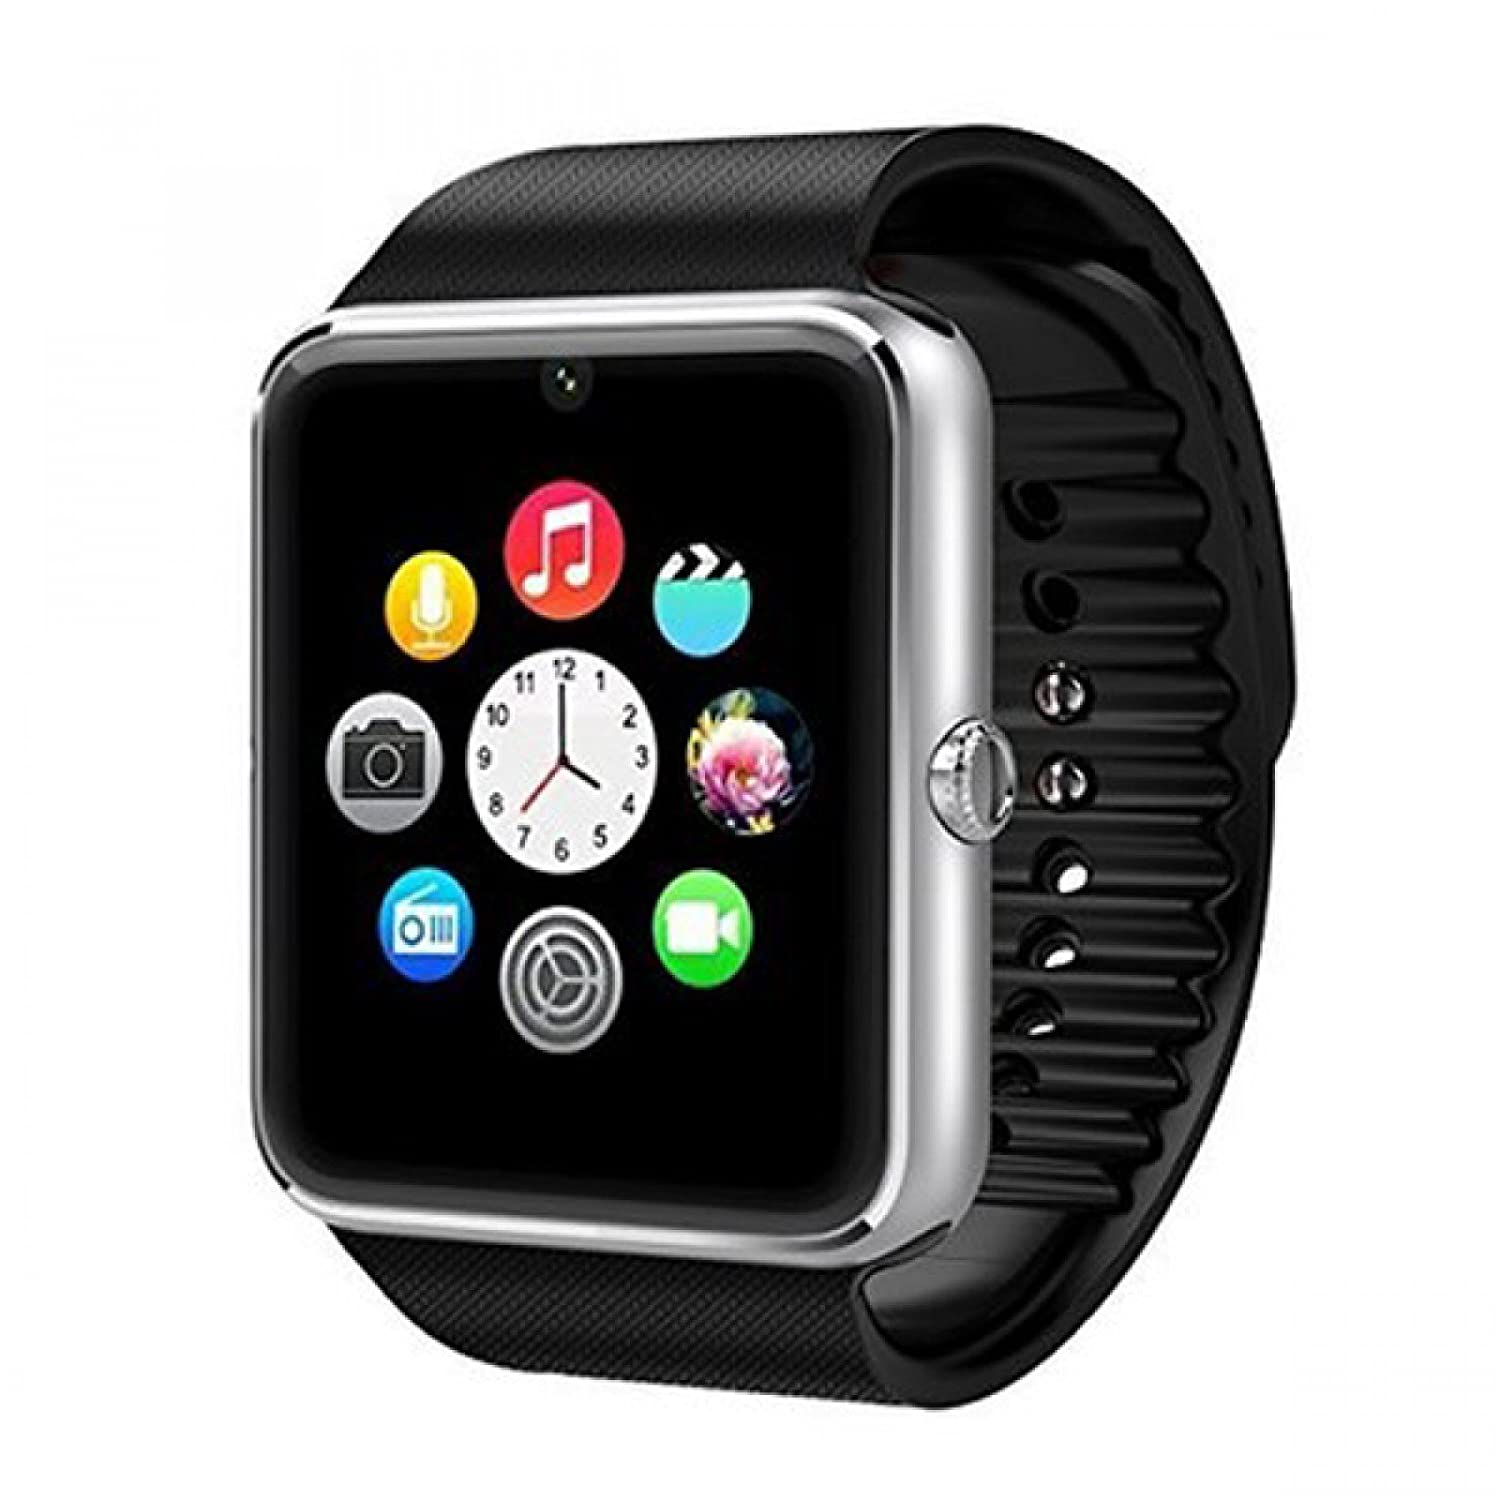 review best products the watch close watches a second but smartwatch versa mobile fitbit phone apple series still is